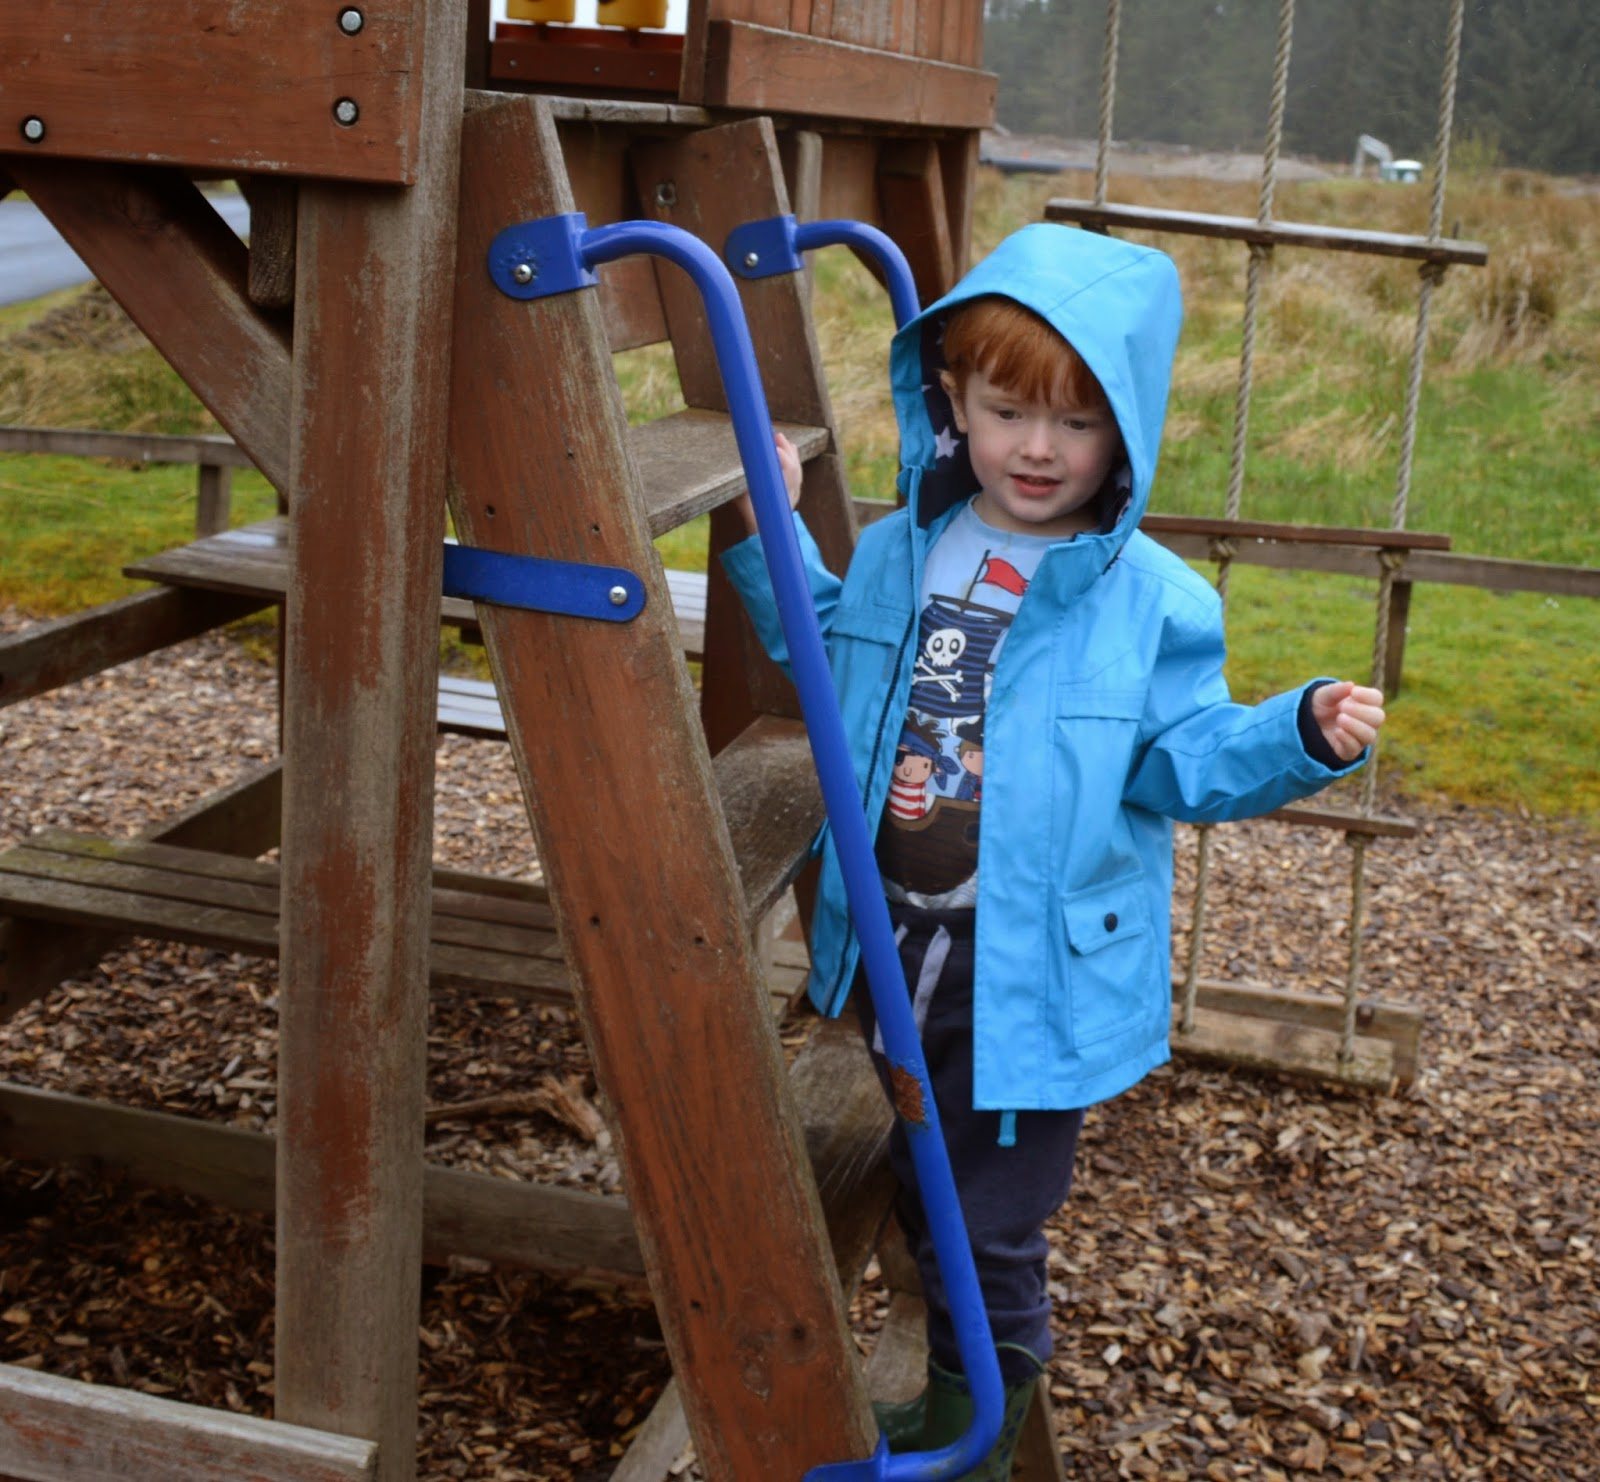 Children's park at the Calvert Trust, Kielder